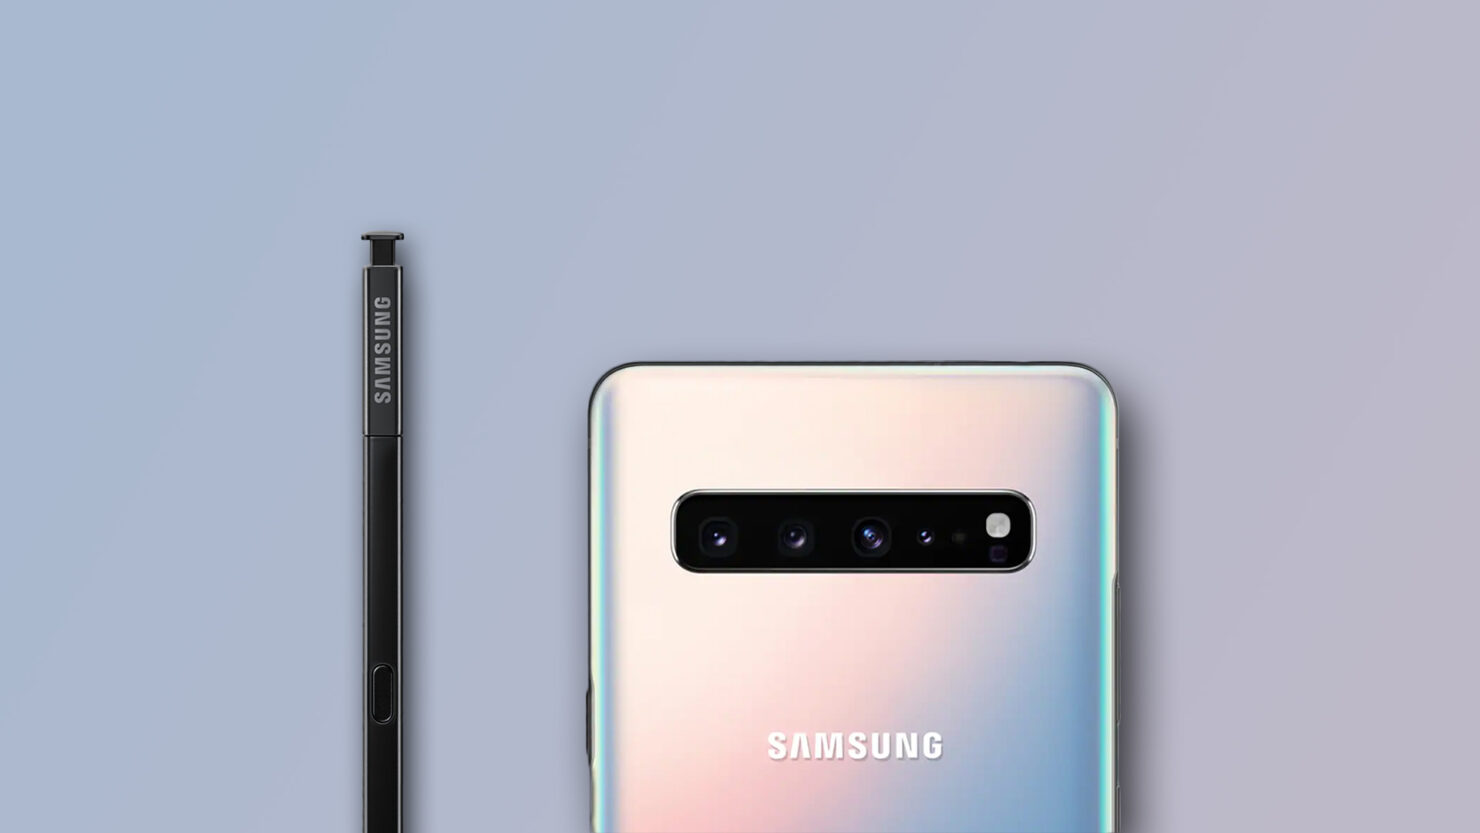 Galaxy Note 10 camera with variable aperture feature